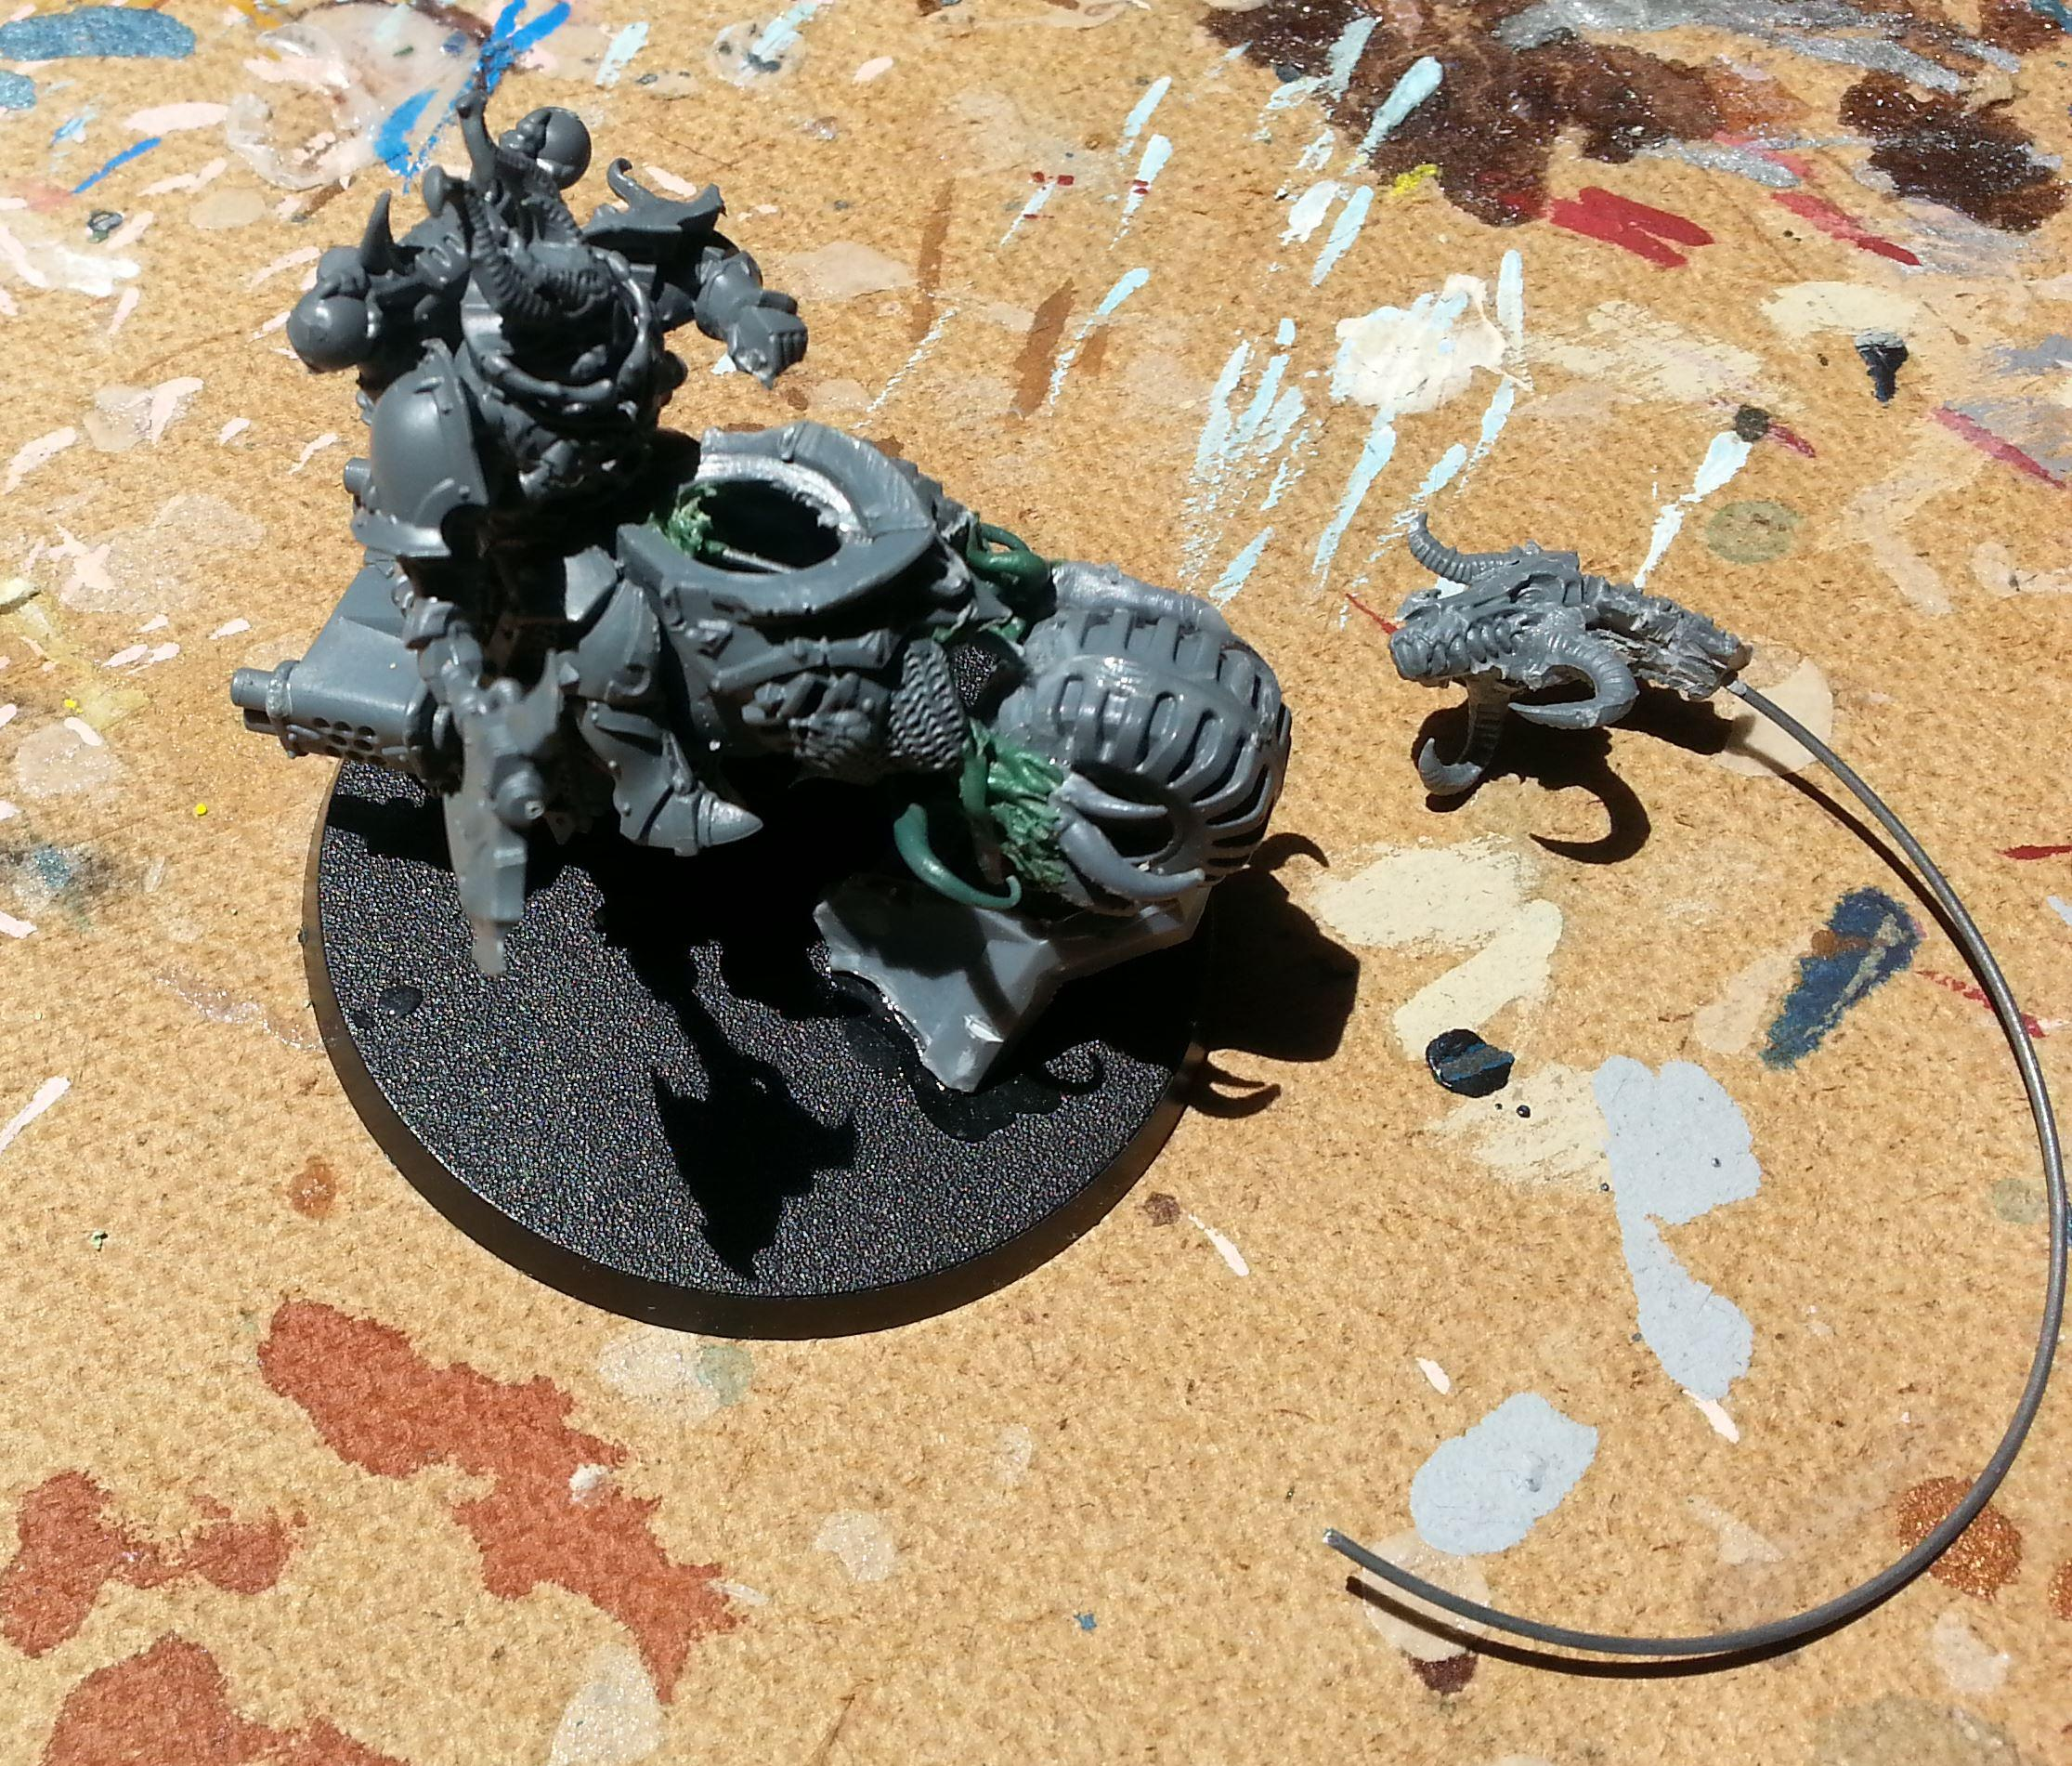 Axe Of Khorne, Black Psalm, Chaos Bikers, Chaos Space Marines, Conversion, Khorne, Knights, Lord